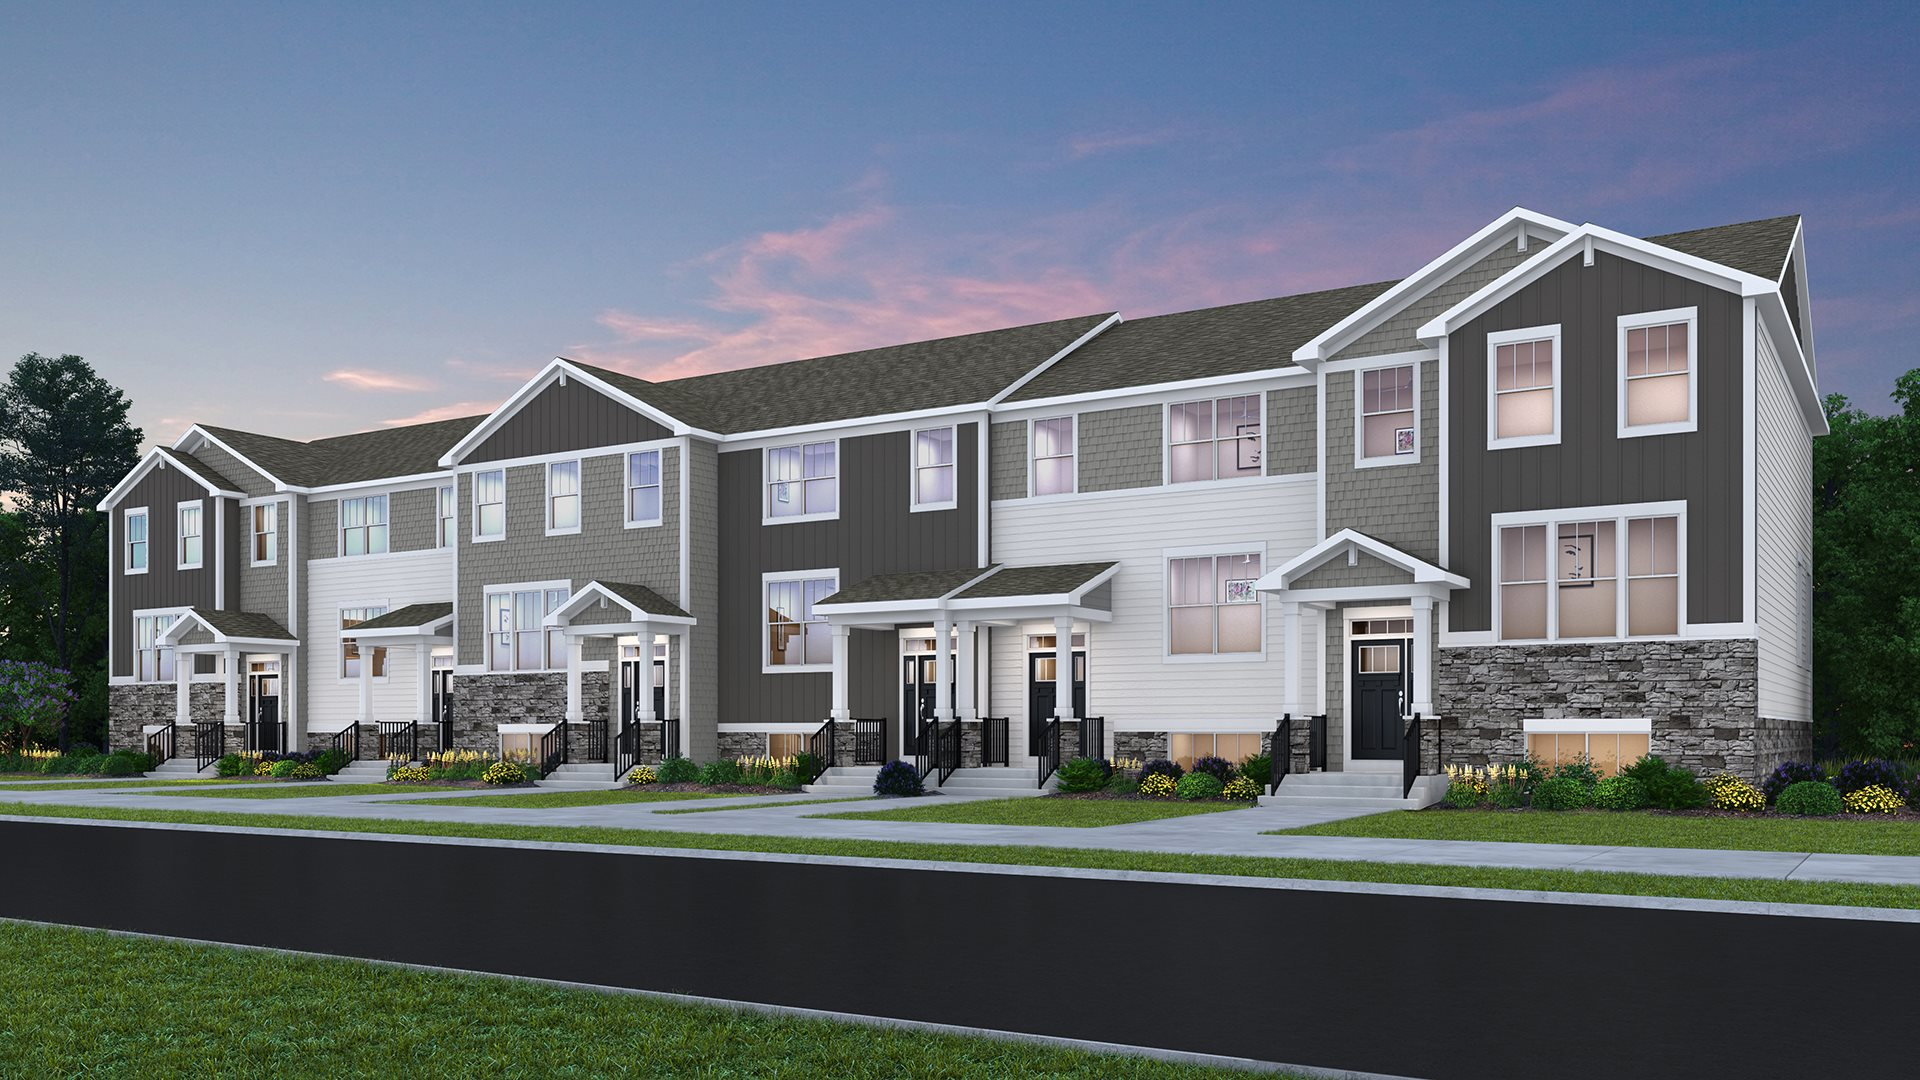 New Urban Townhomes for sale in South Elgin, IL by Lennar Homes